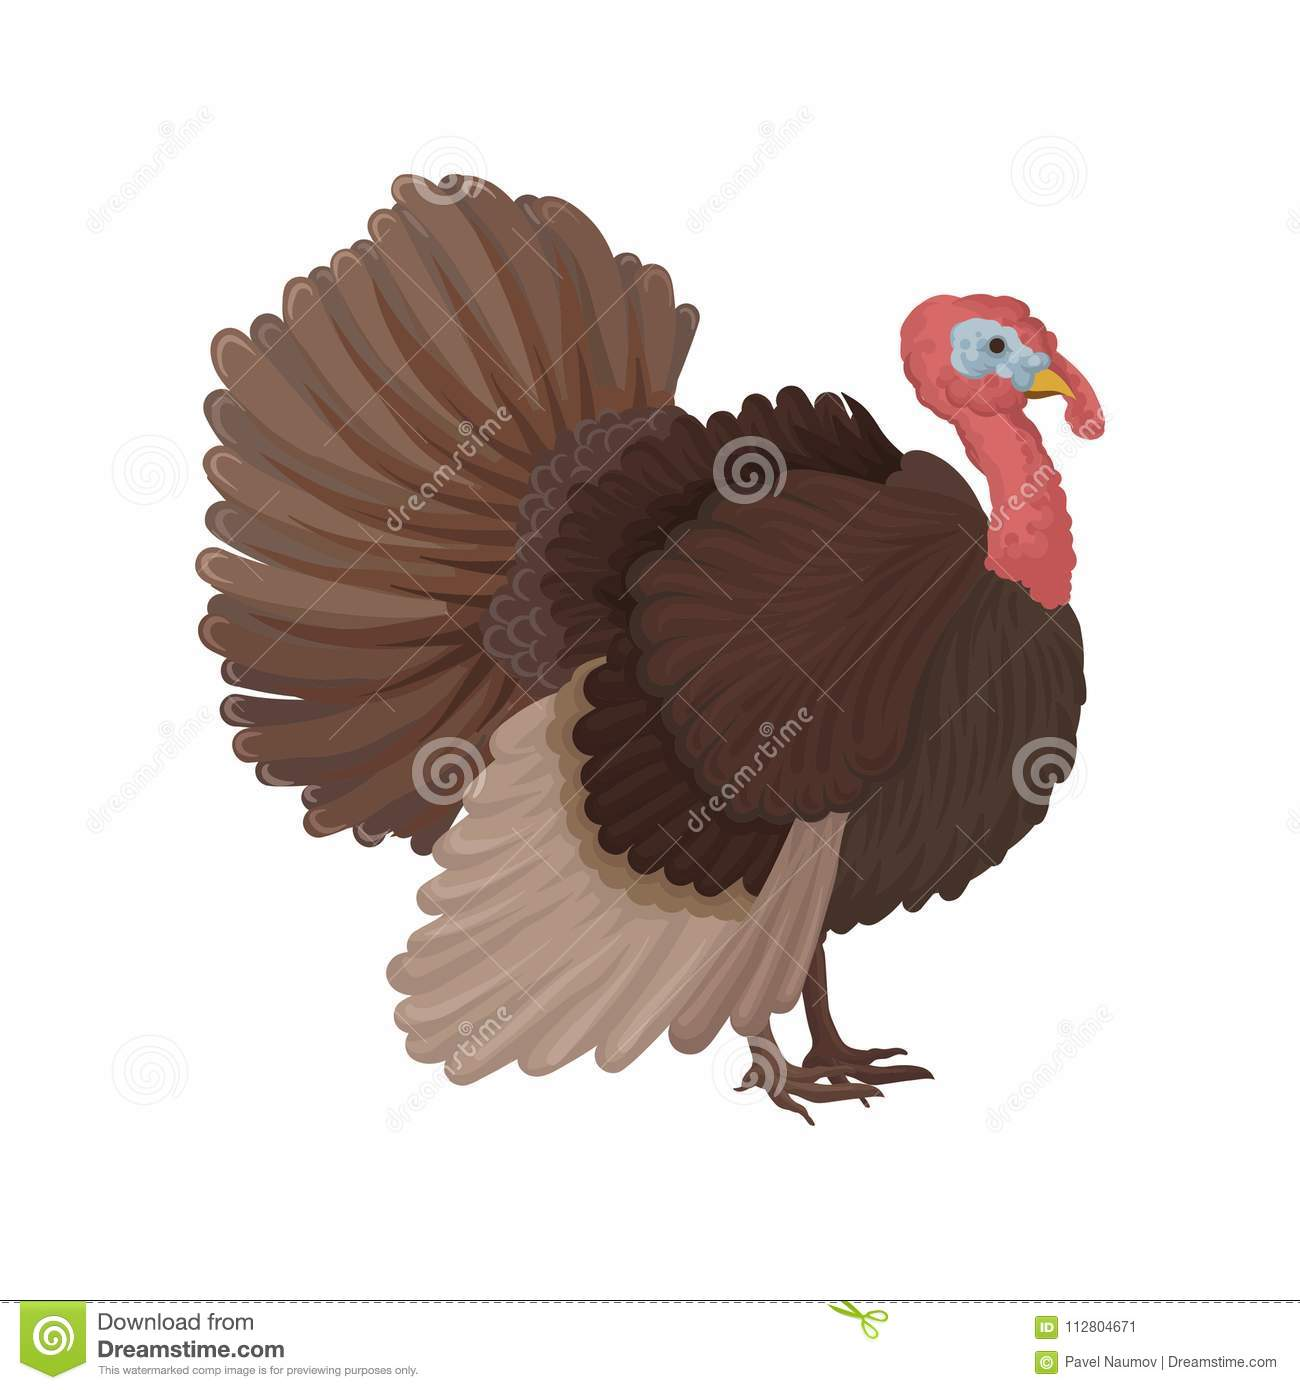 Turkey bird, poultry breeding vector Illustration on a white background